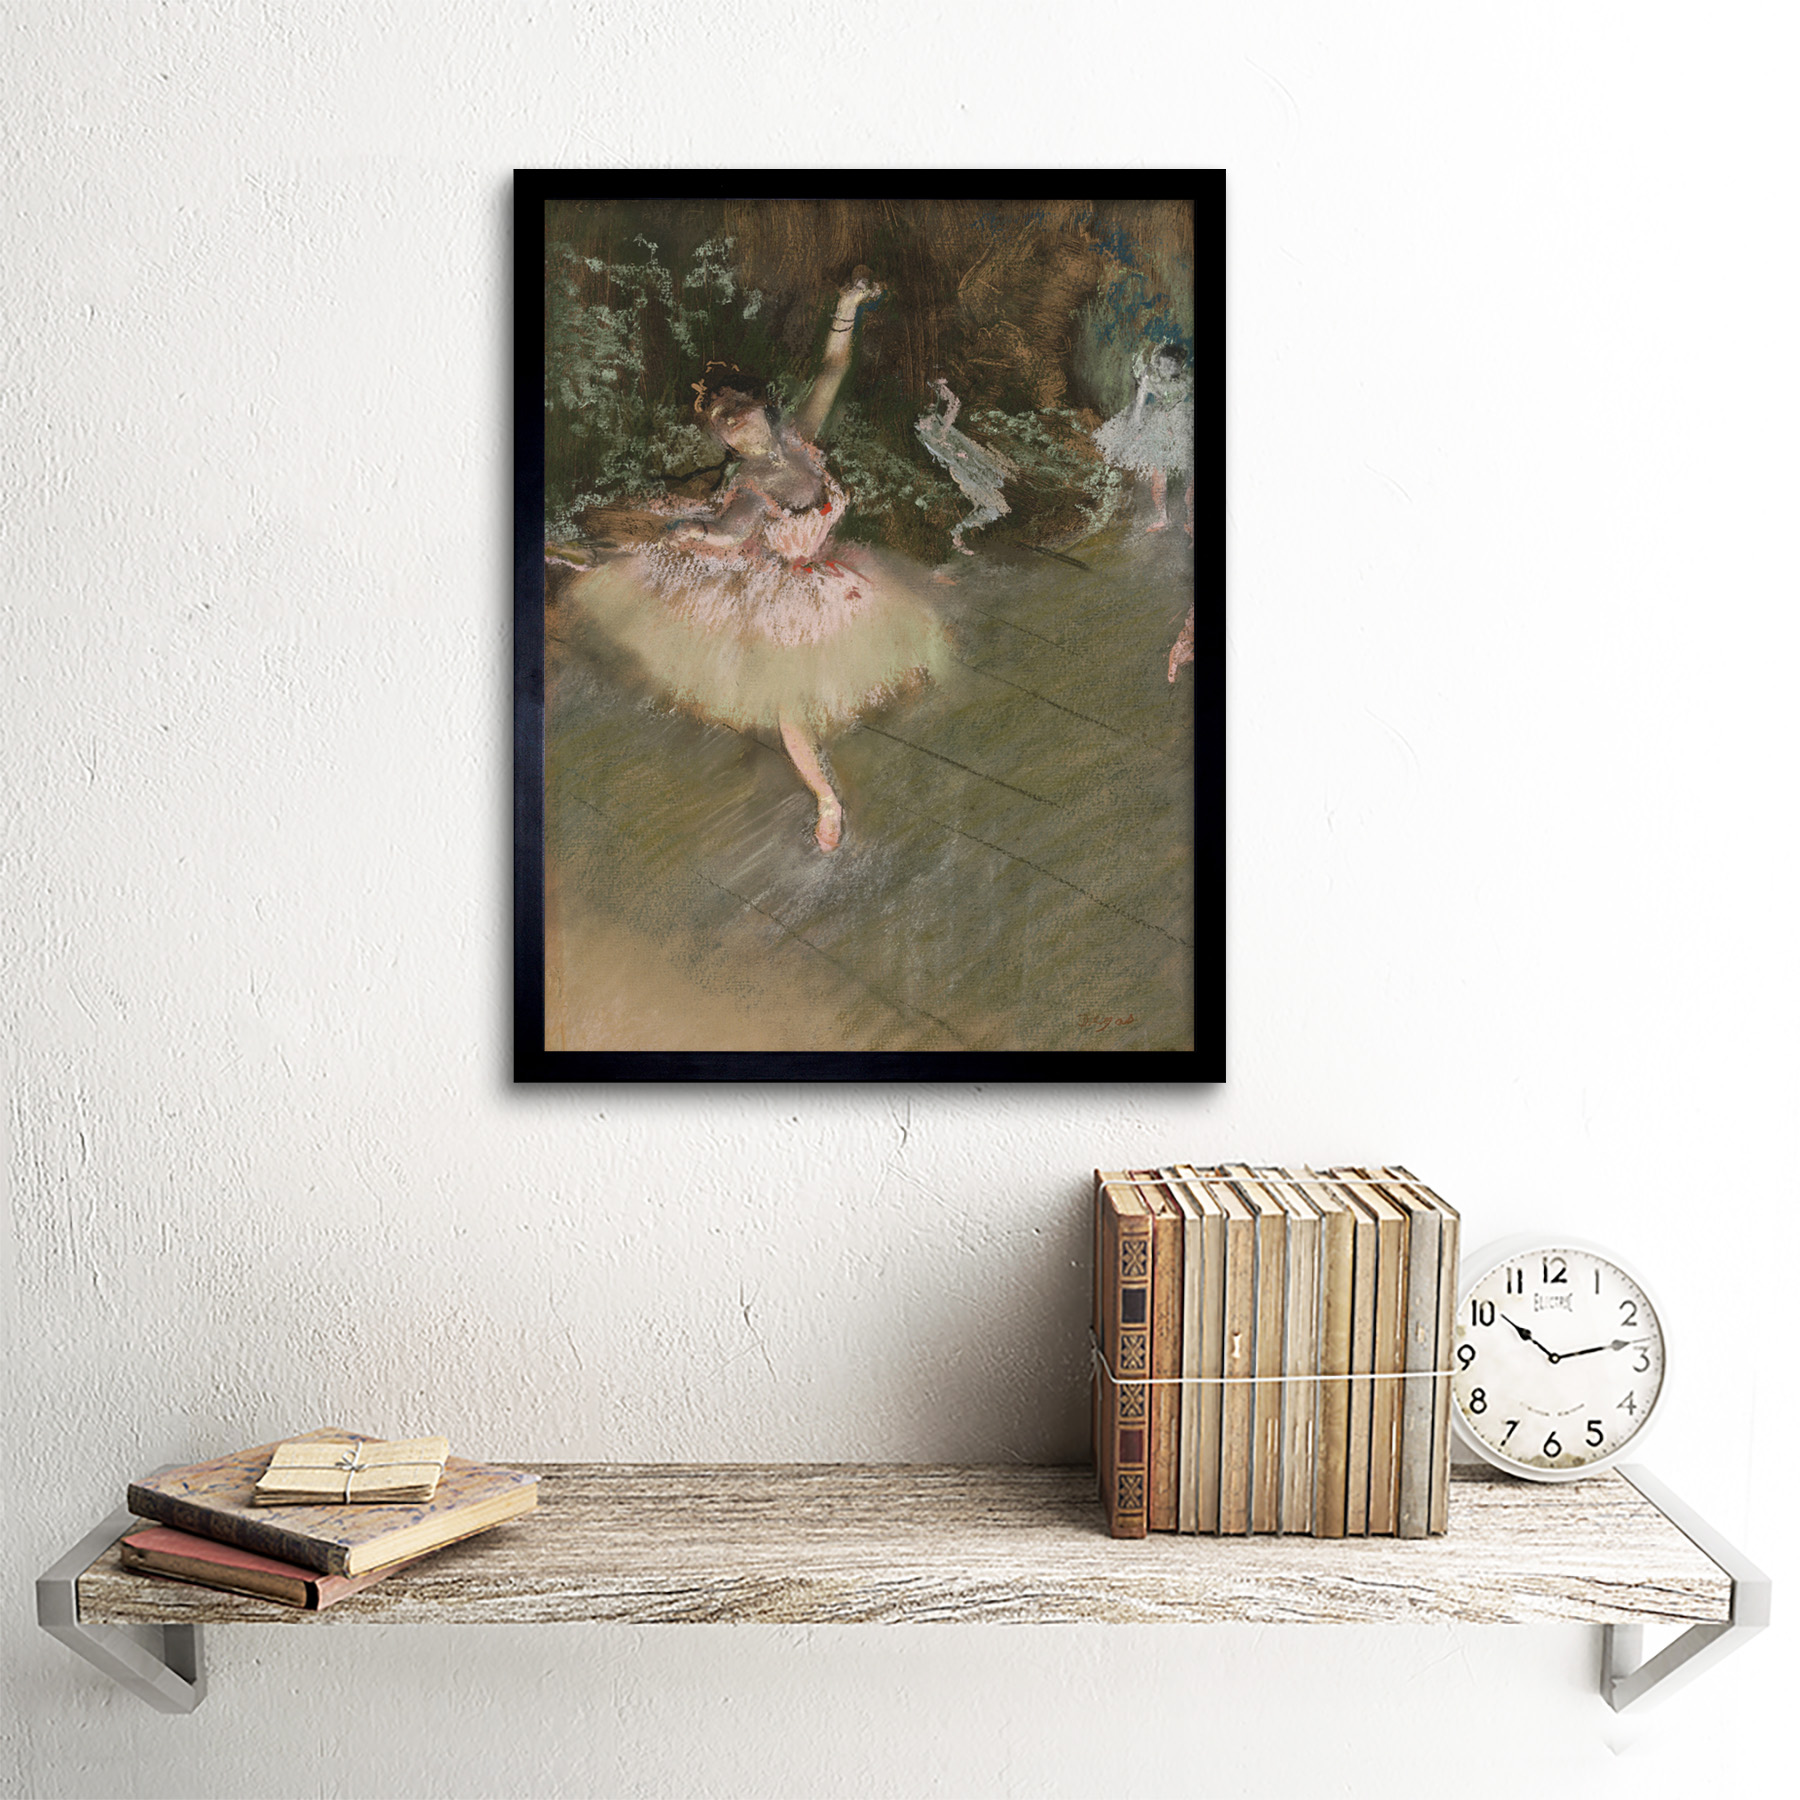 Edgar-Degas-The-Star-Art-Print-Framed-12x16 thumbnail 3